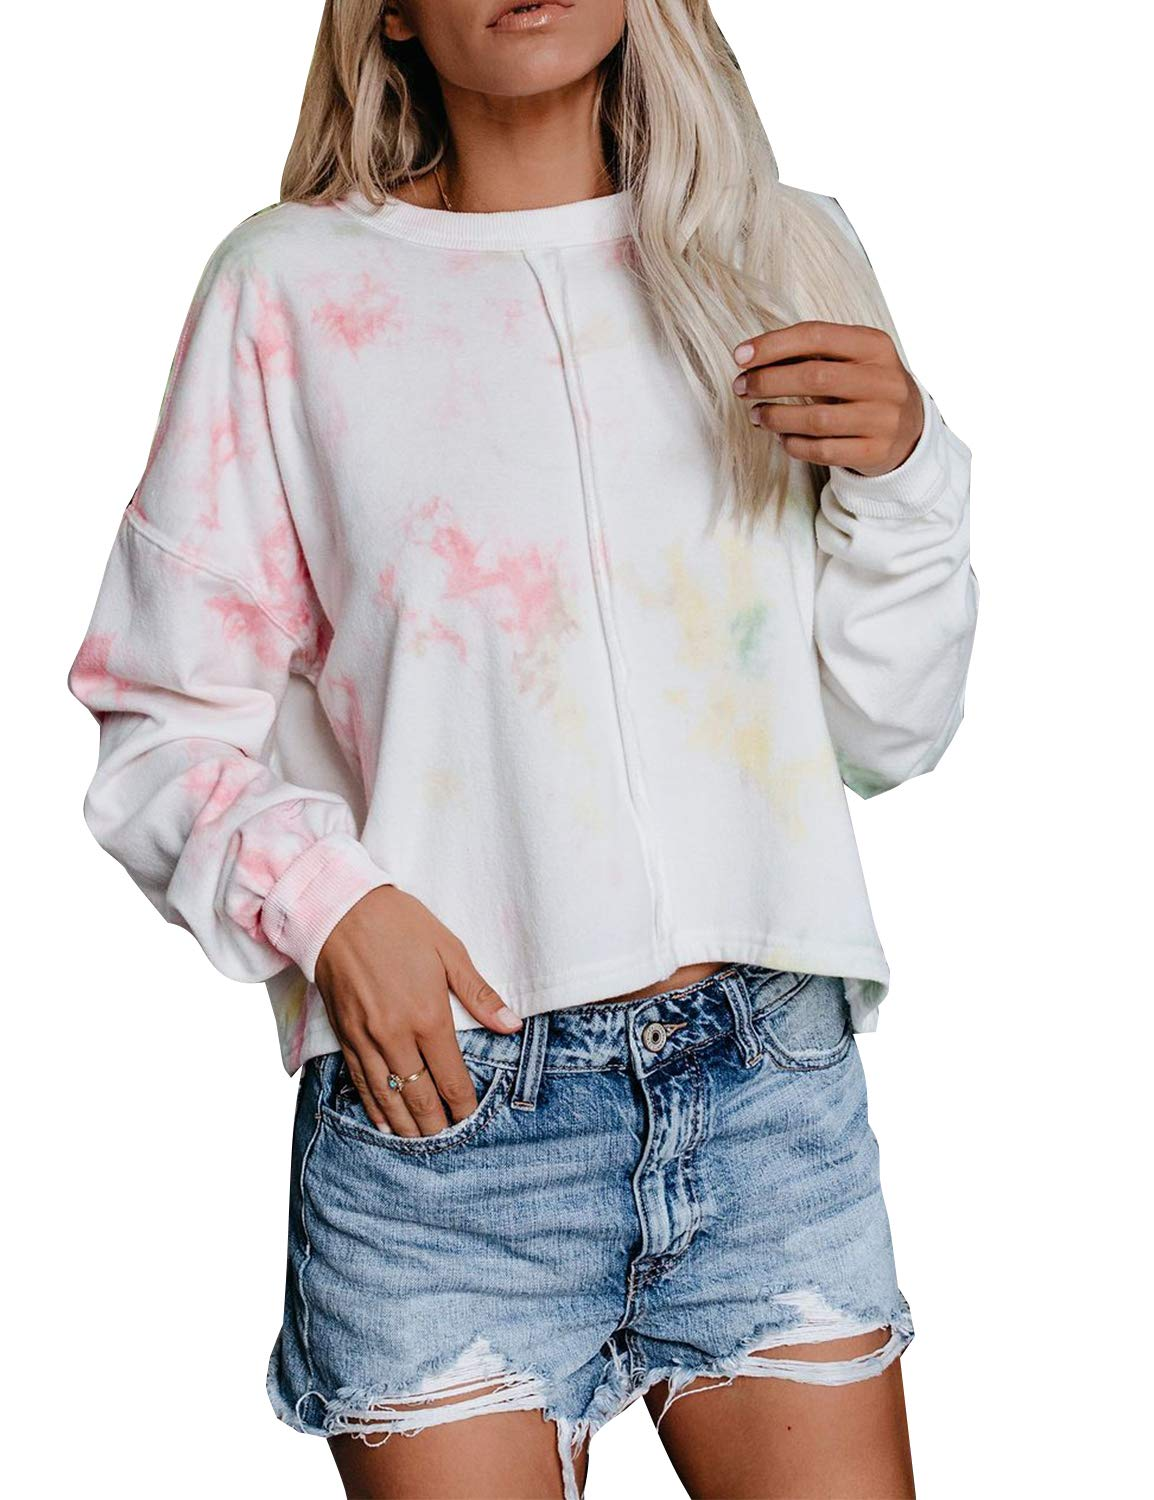 Blooming Jelly Womens Long Sleeve Round Neck Tie Dye Pullover Sweatshirt Top White